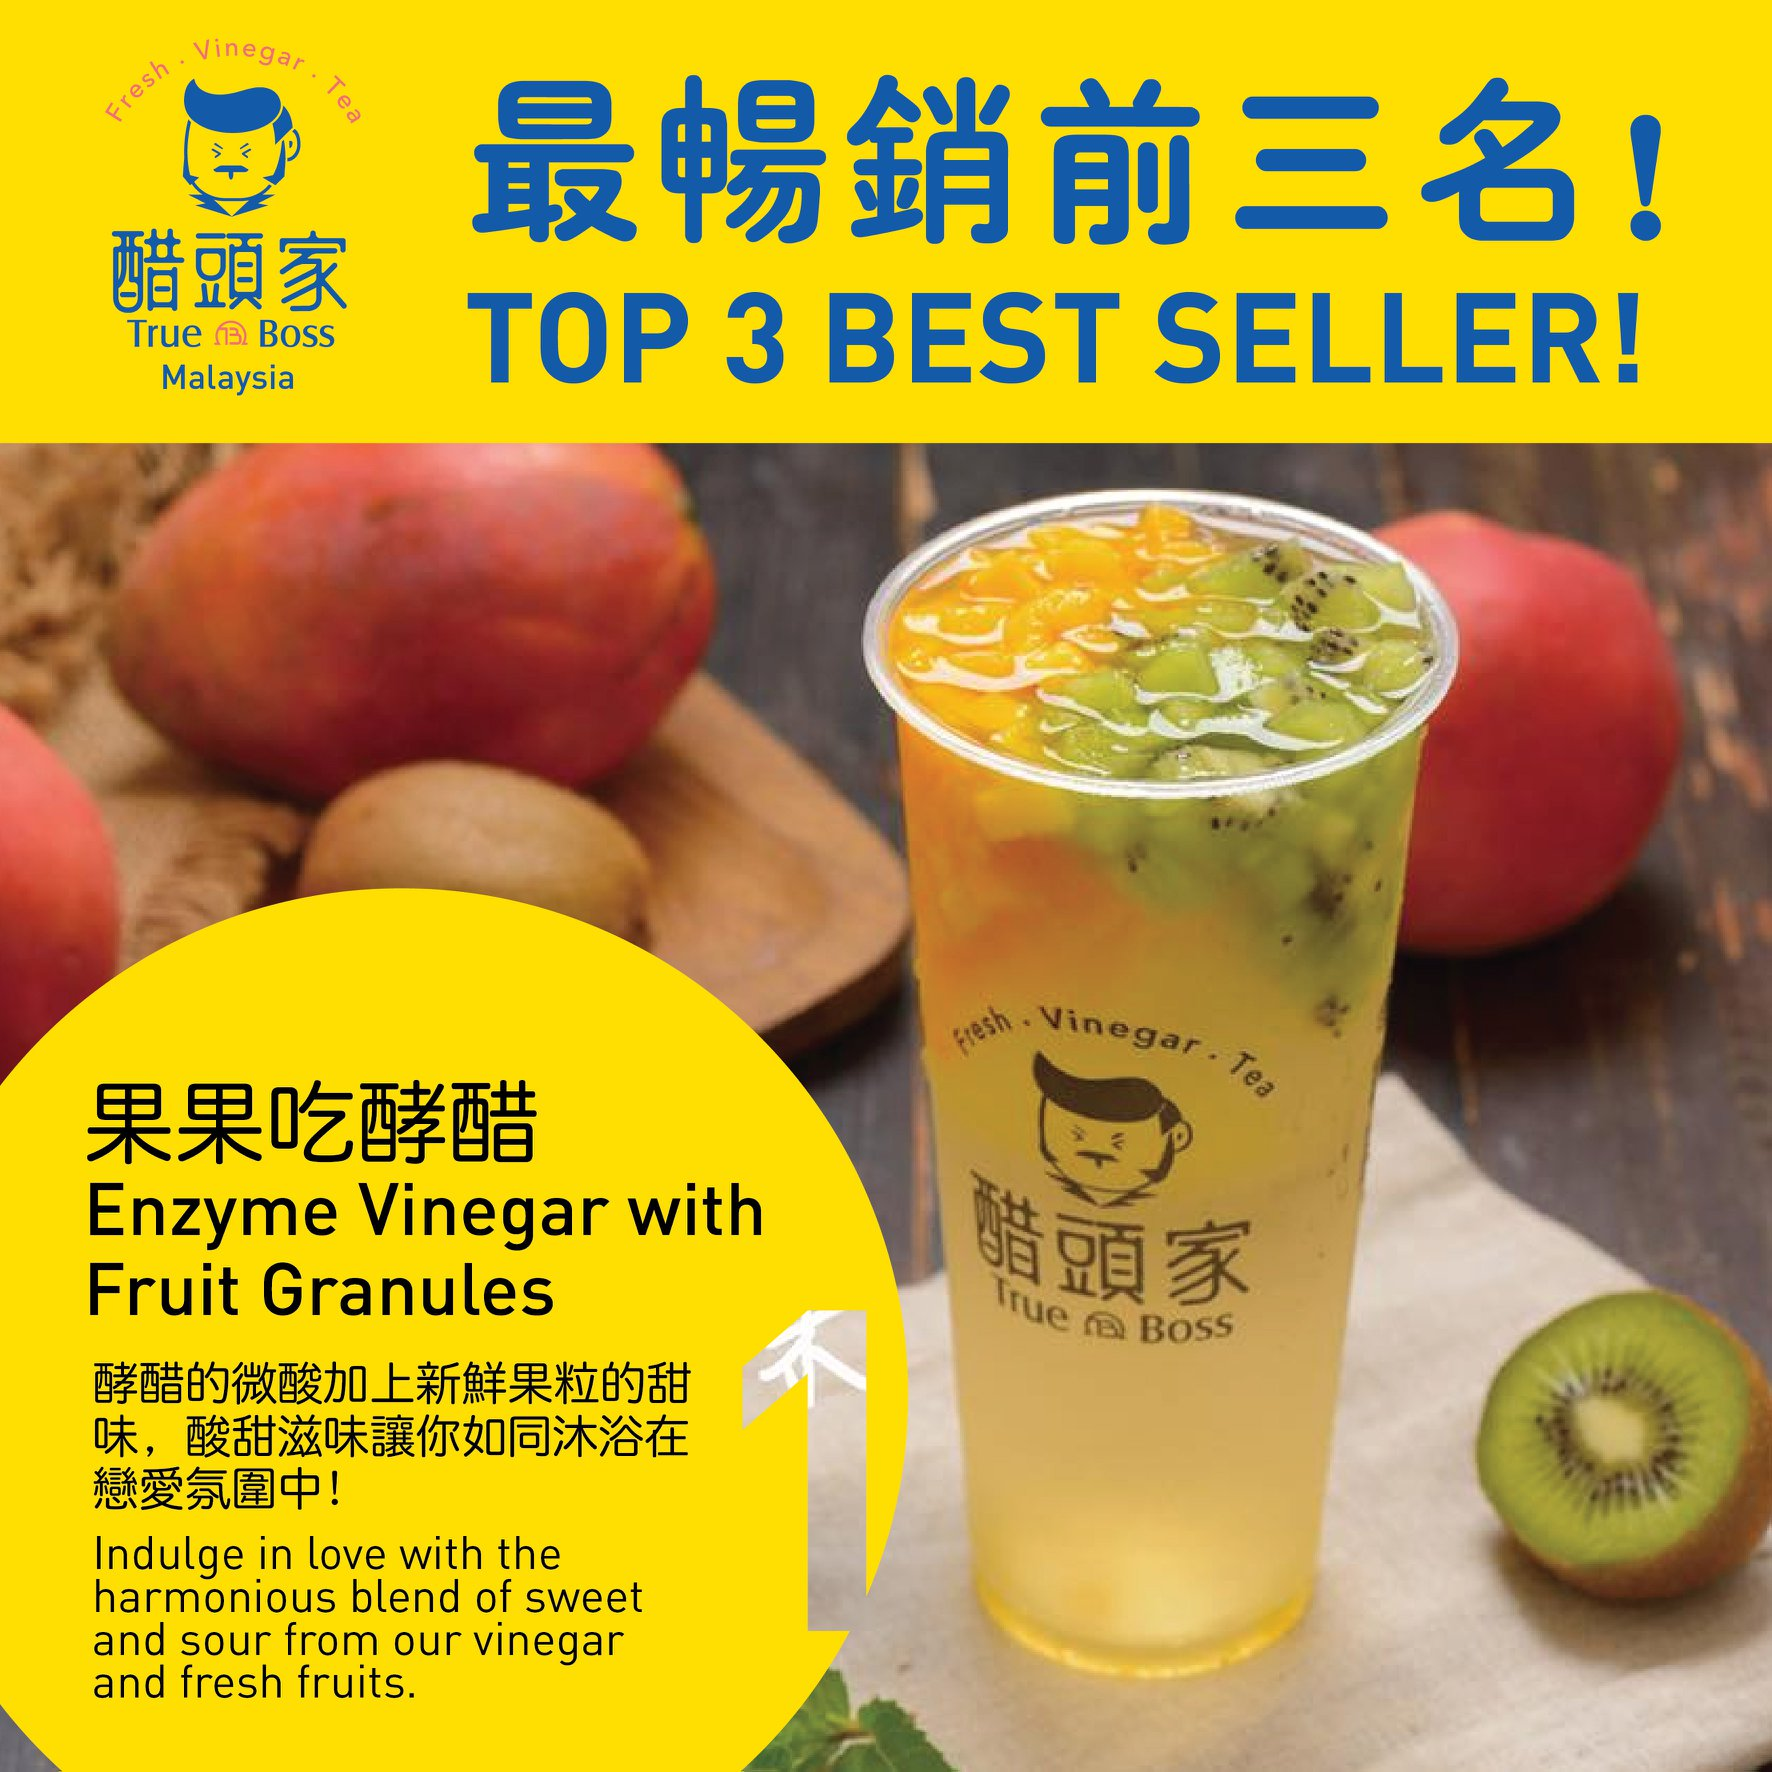 85 Bubble Tea Malaysia Brands Updated August 2019 - Complete